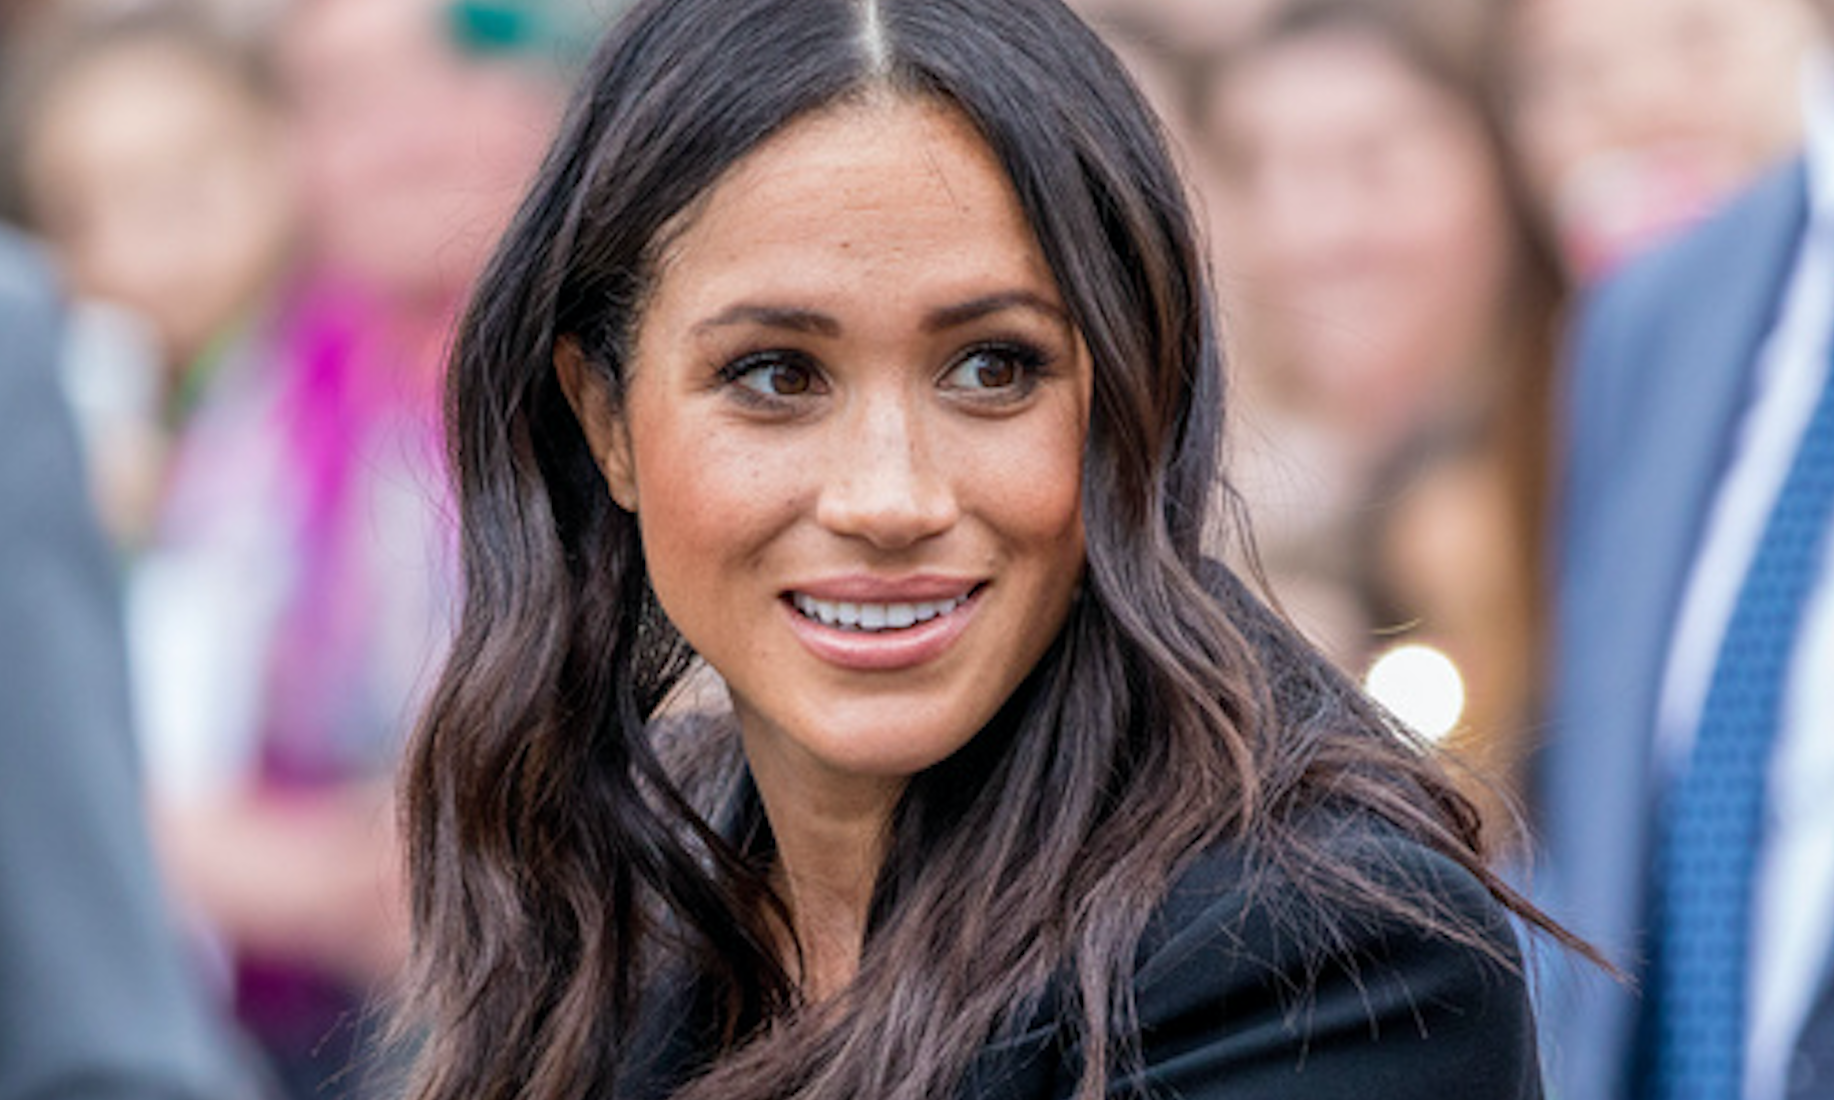 Meghan Markle 'drops bid to become British citizen following Canada move'